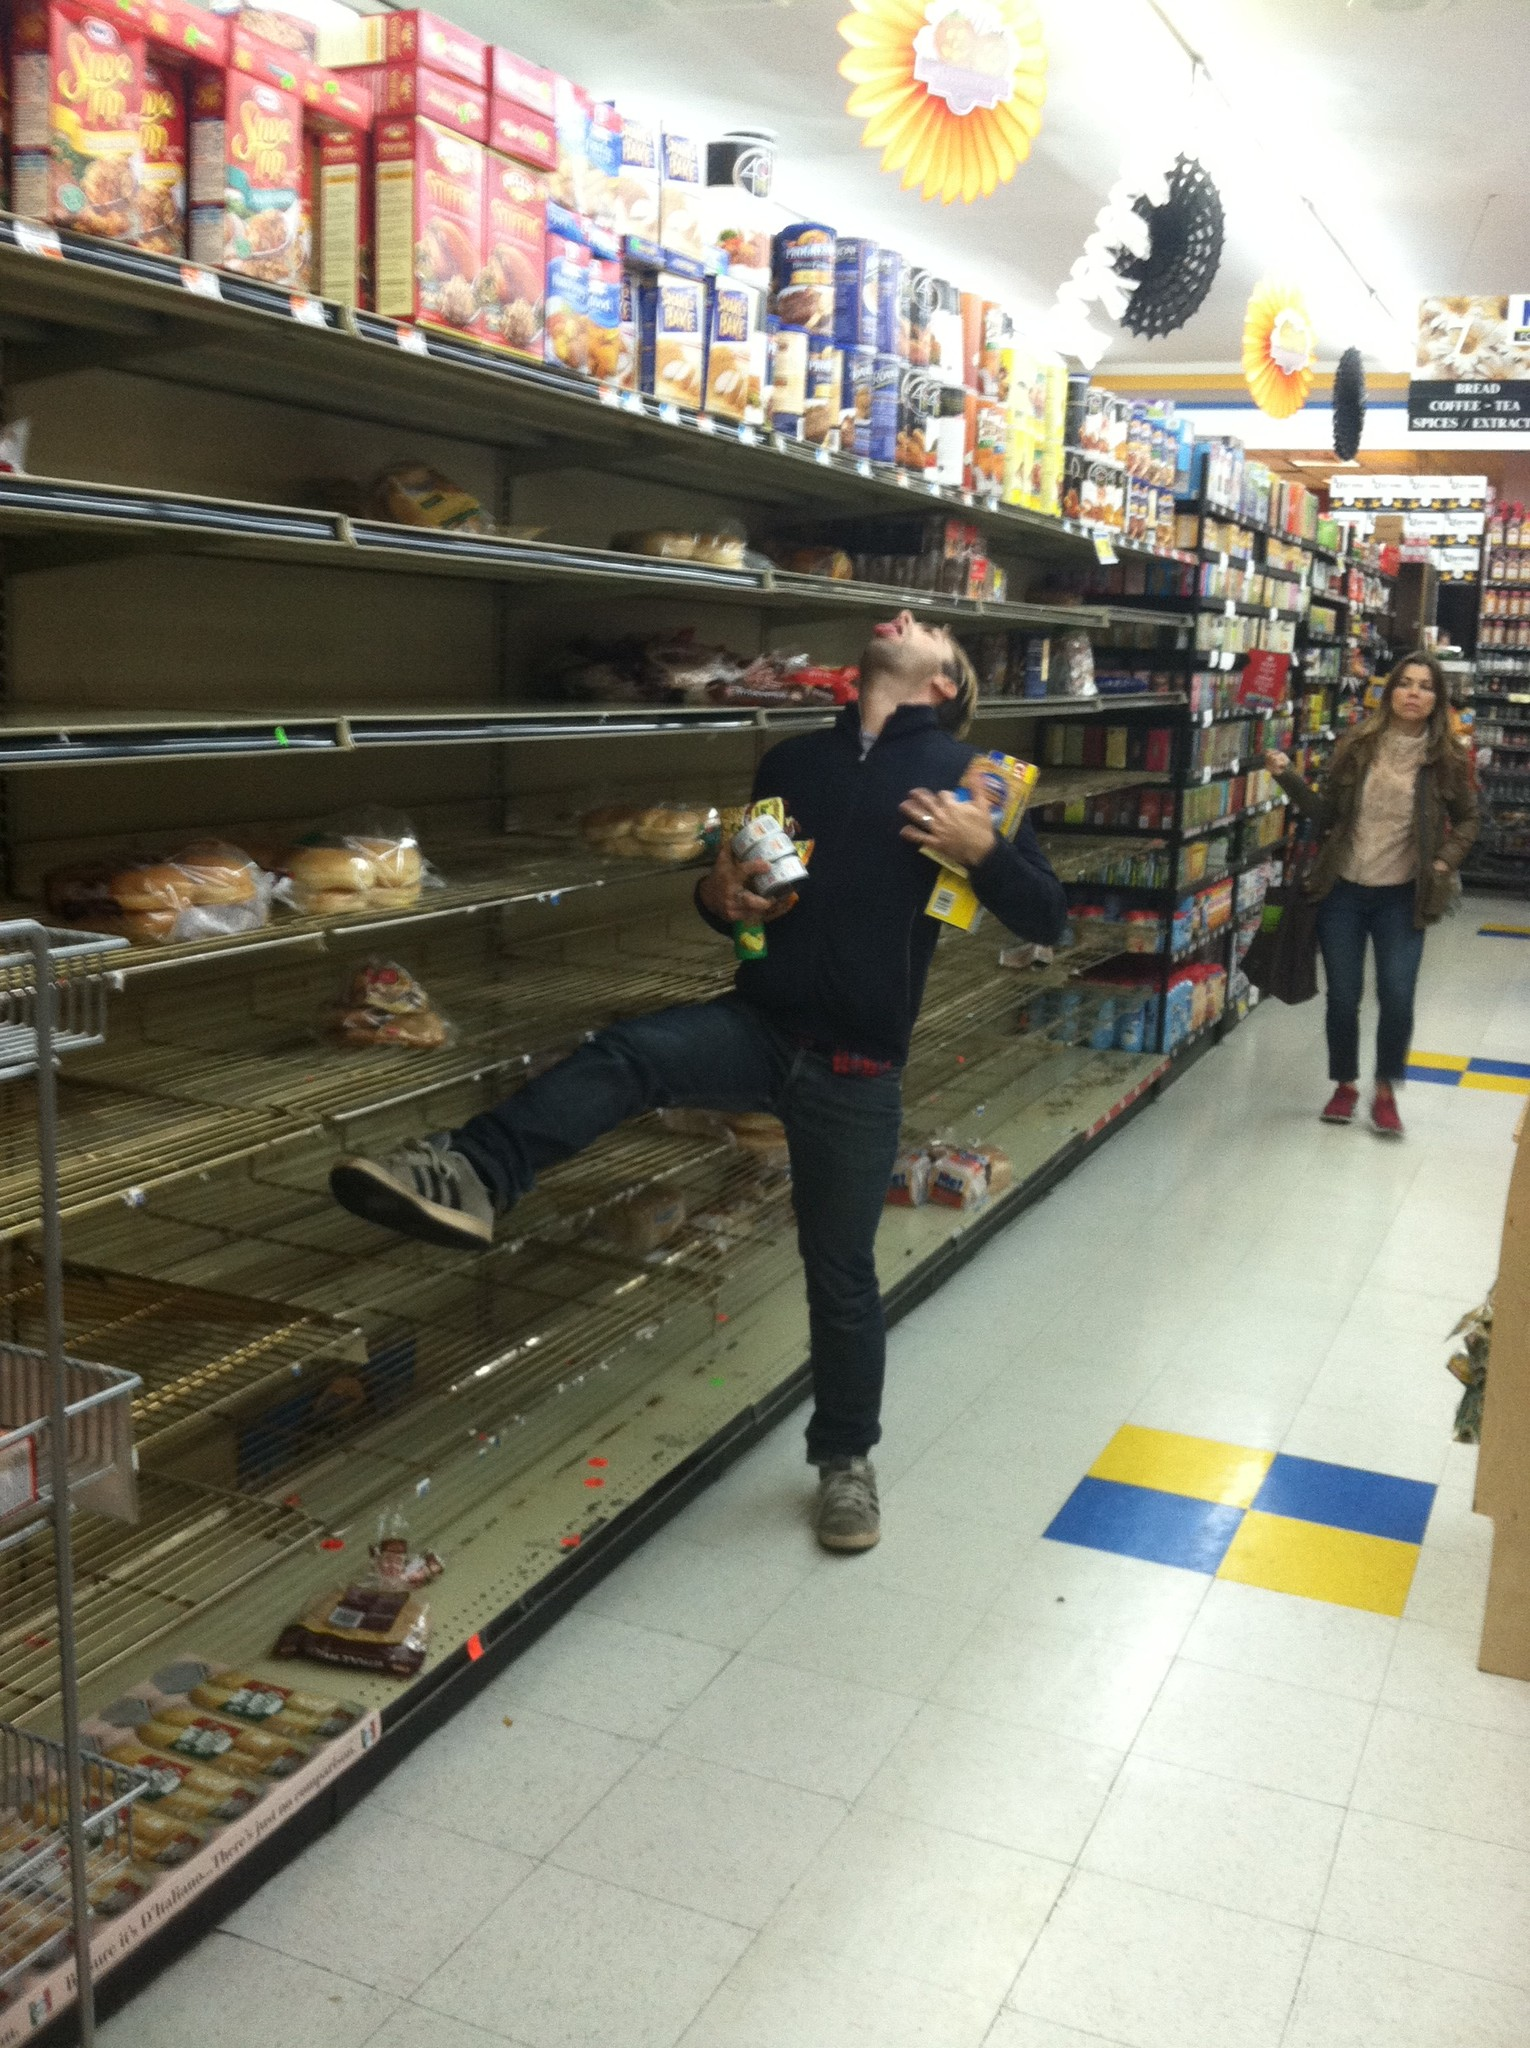 A pic of PJ Mehaffey in the empty bread aisle at a grocery store